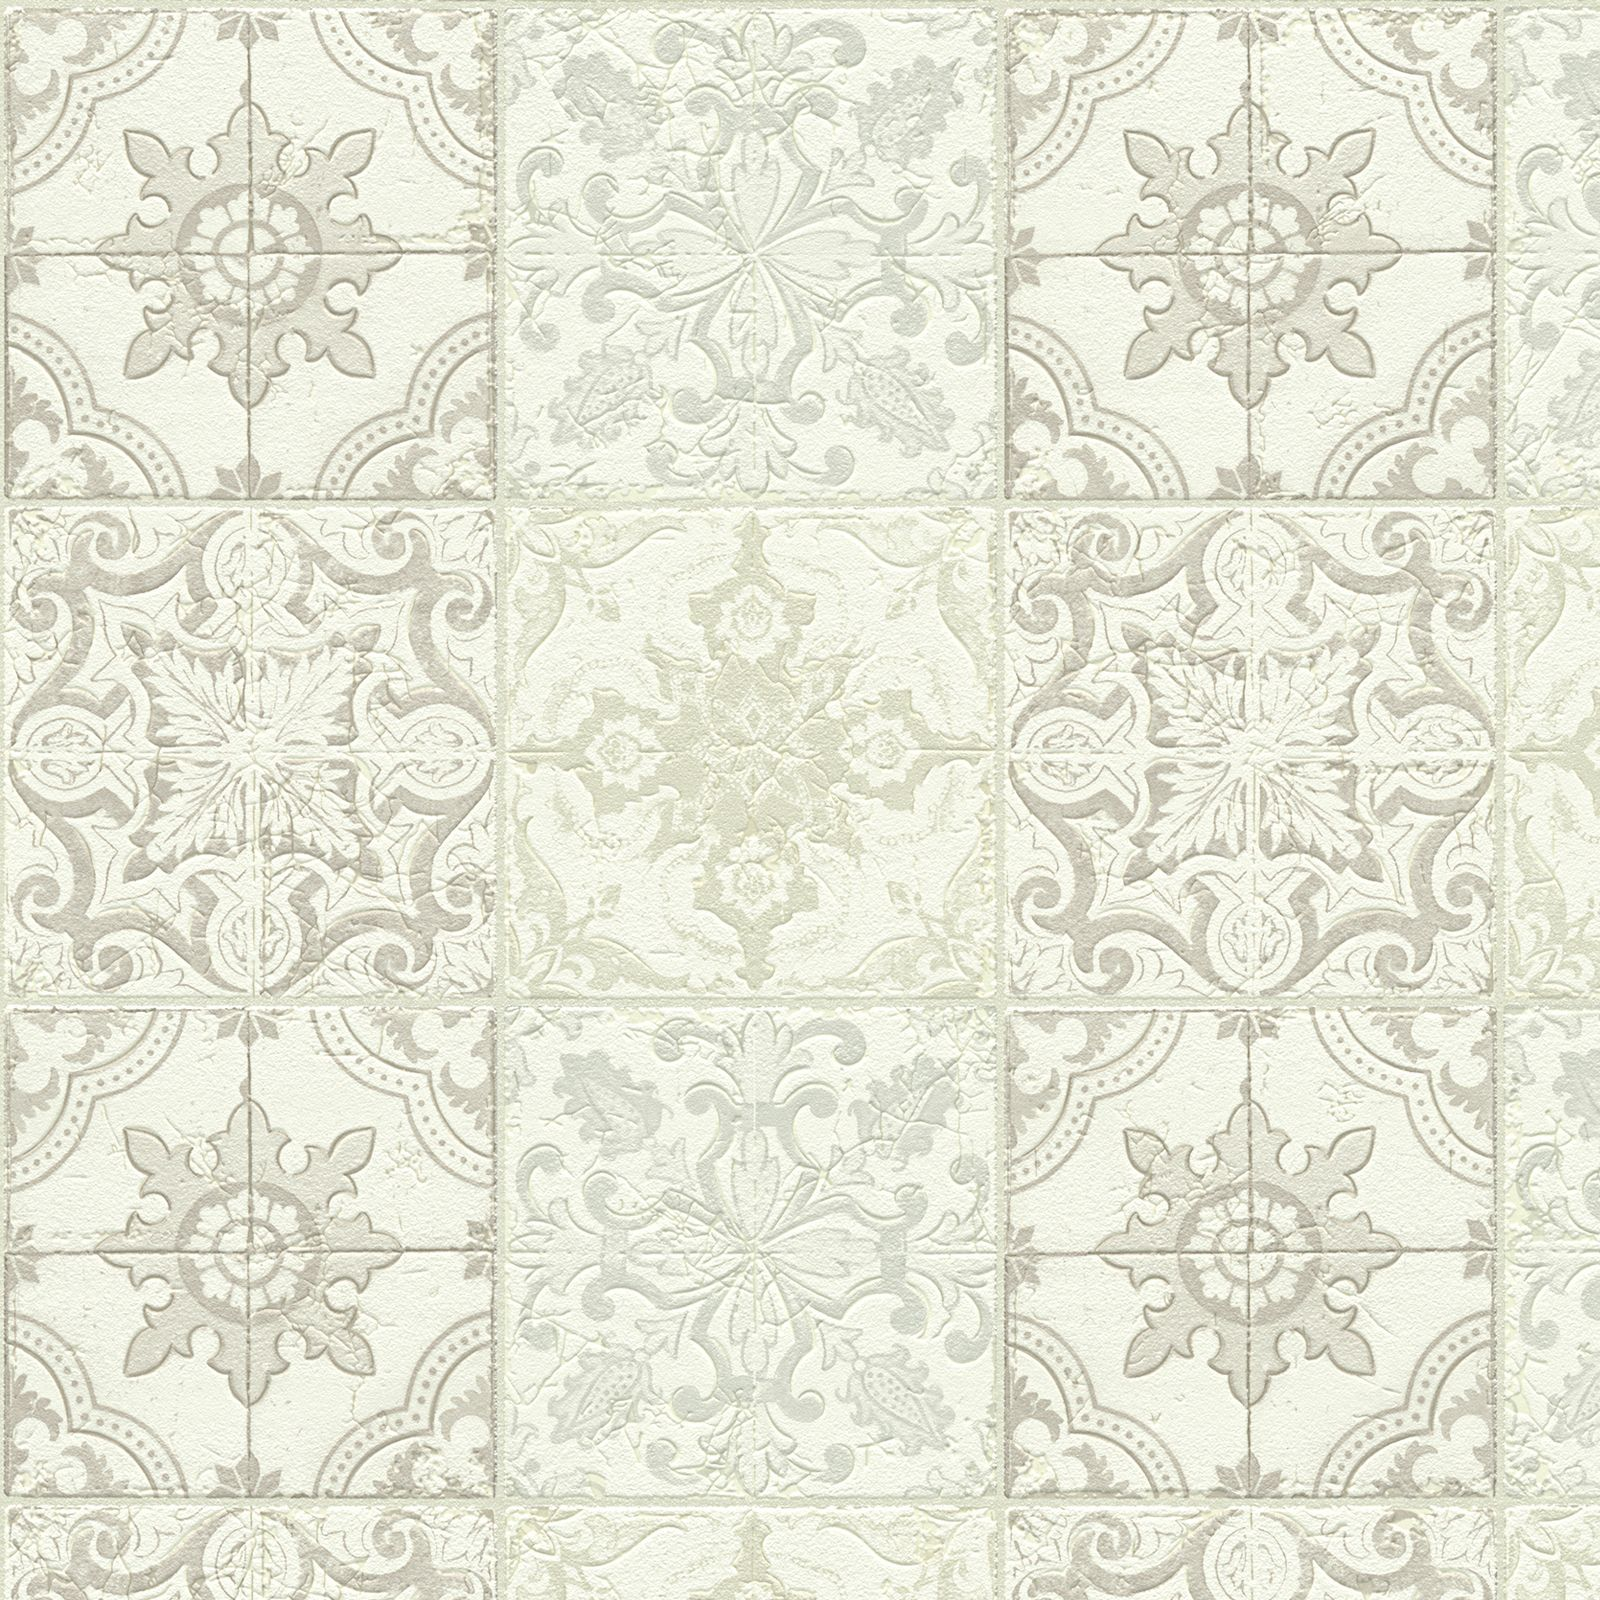 Kitchen Wallpaper At B Q: A.S. Creation Chatsworth Beige, Cream & White Mosaic Tile